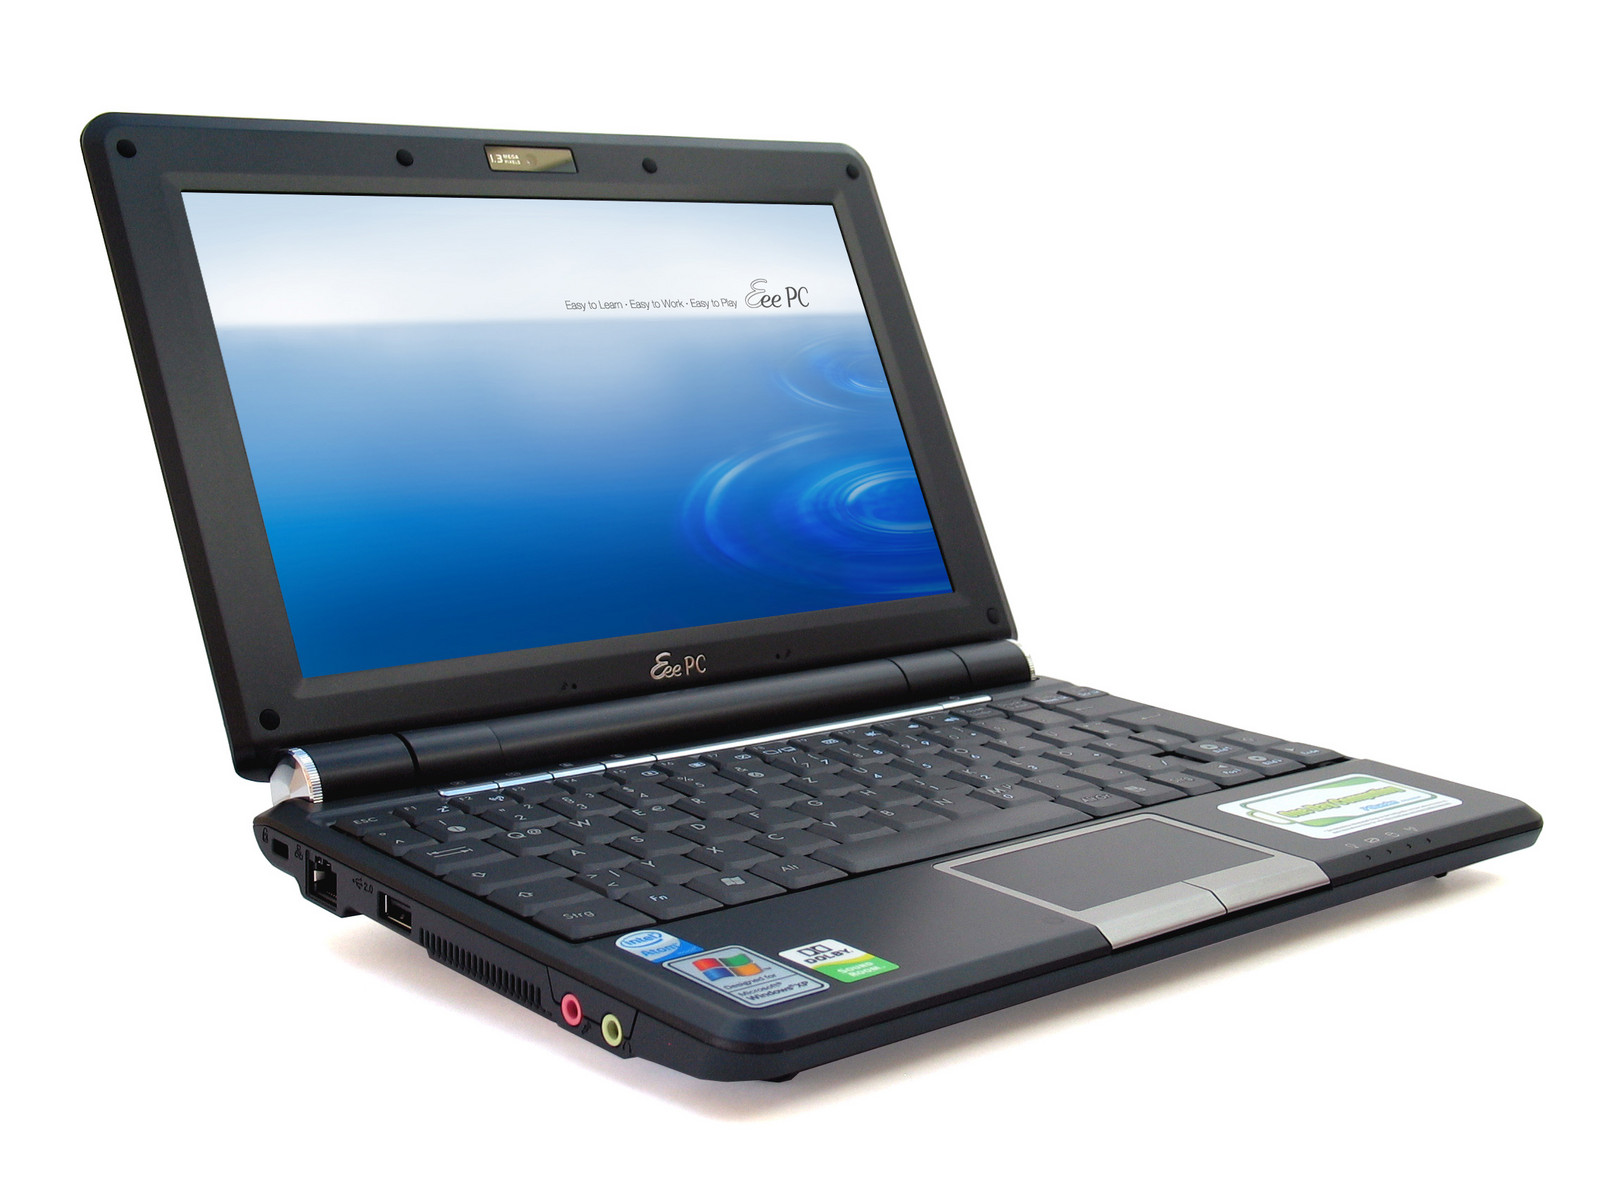 ASUS EEE PC 1000 WINDOWS 7 X64 DRIVER